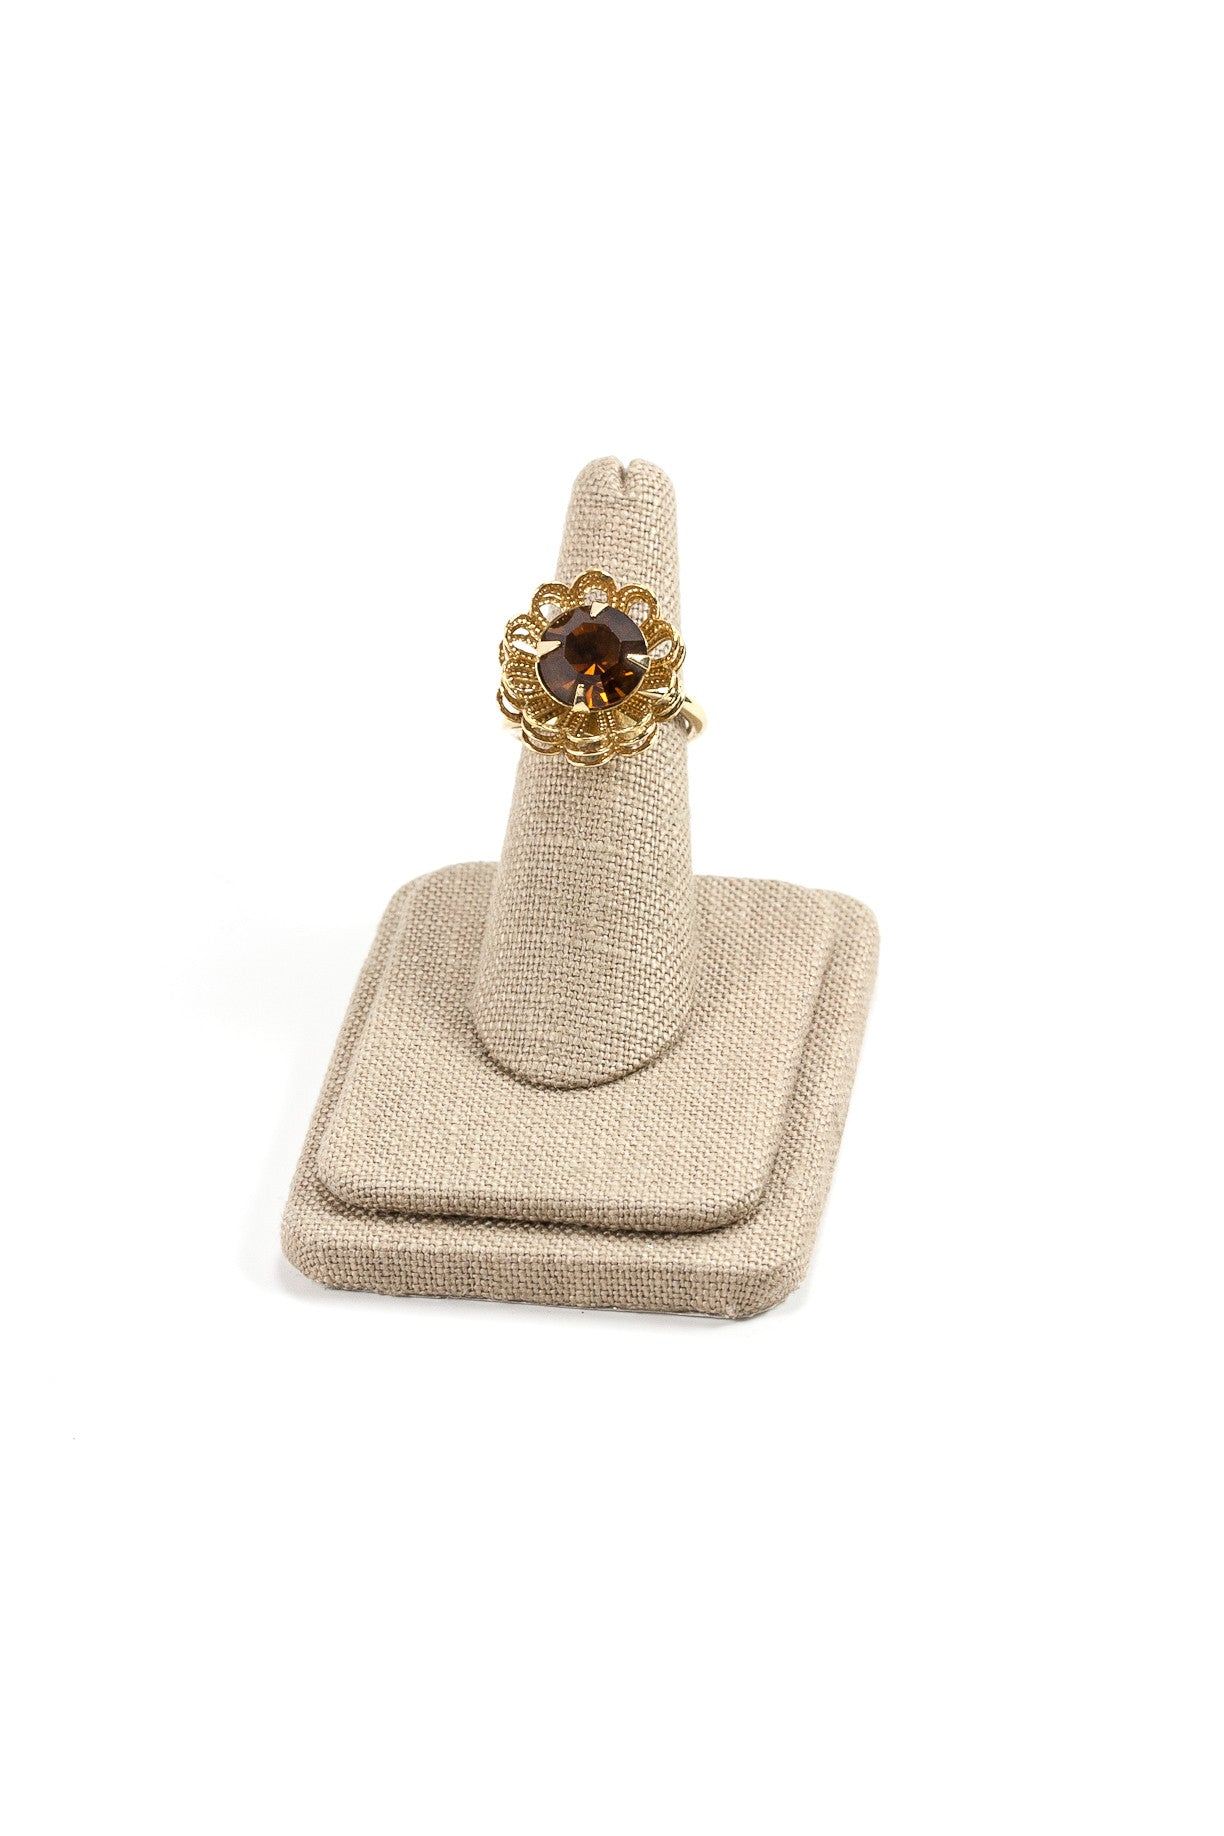 50's__Sarah Coventry__Adjustable Rhinestone Ring